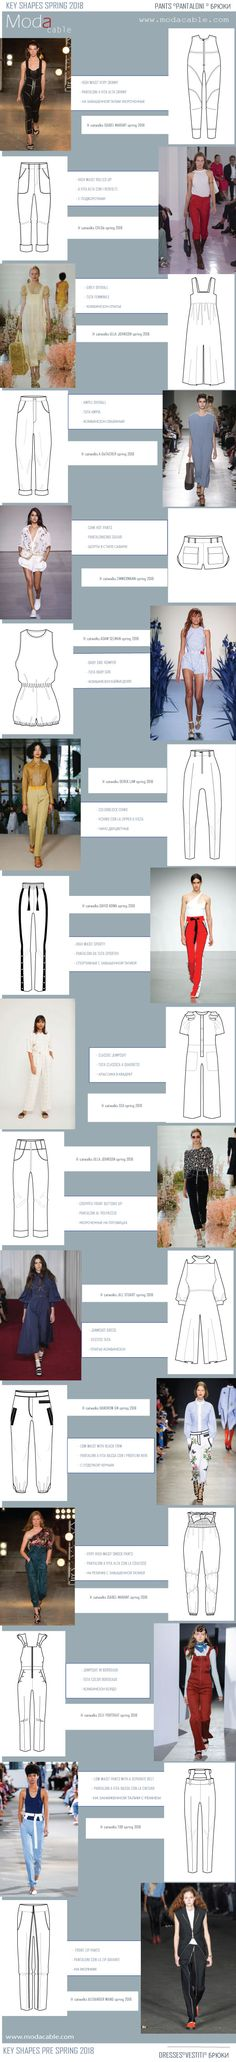 all the runway key shapes spring 2018 are already here!!!wow!! only at www.modacable.com